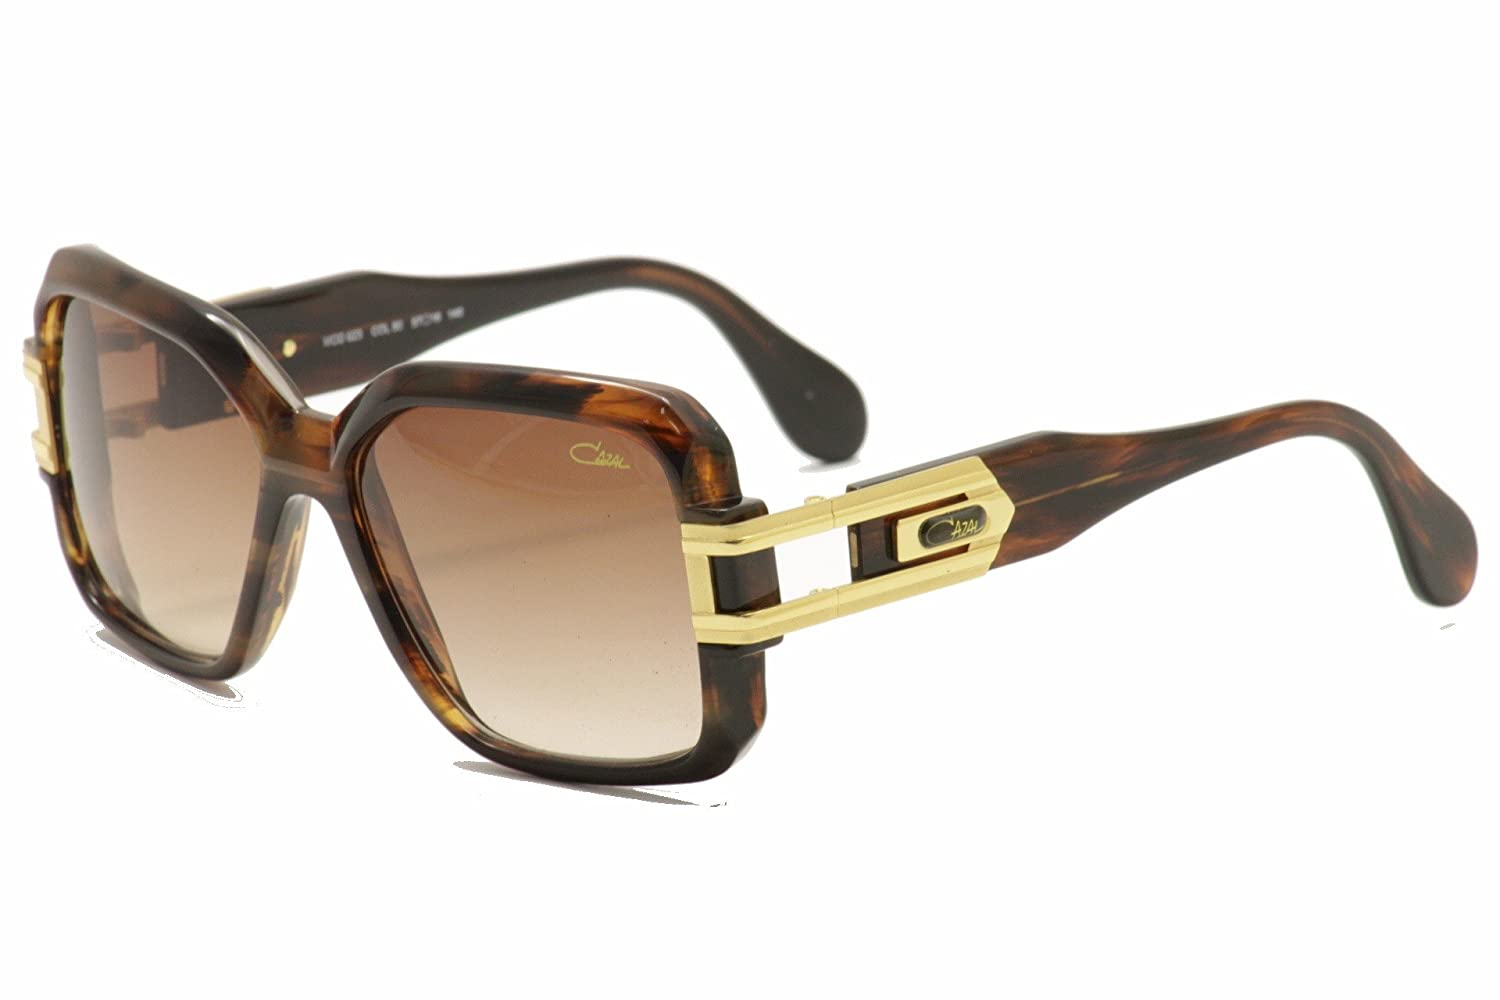 7f8a4aa0bbed Amazon.com  Cazal 623-001 SG Square Sunglasses